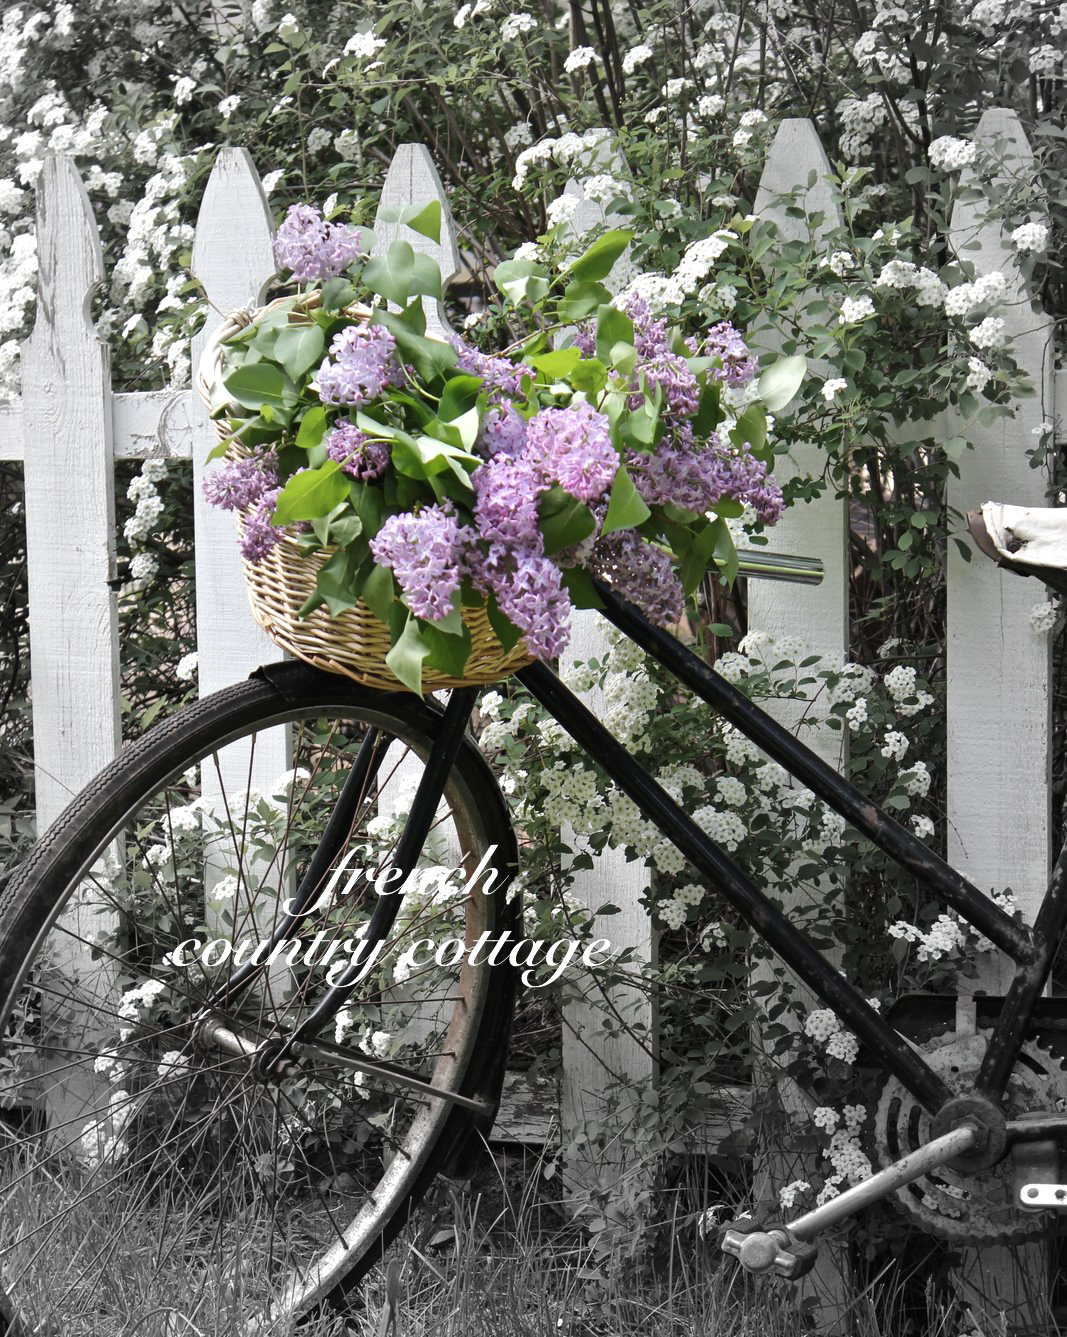 A bouquet of lilacs french country cottage a bouquet of lilacs mightylinksfo